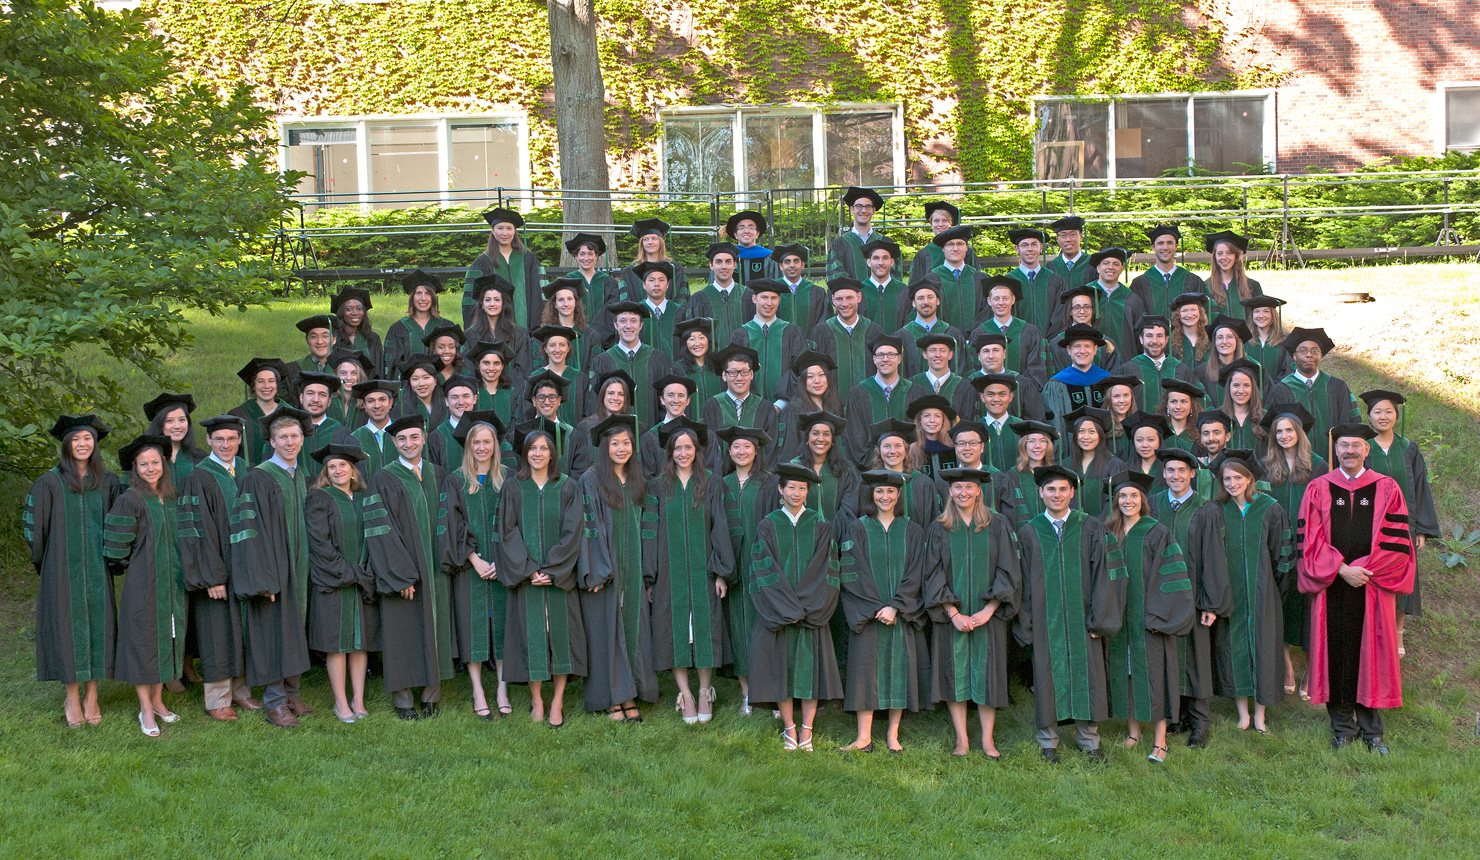 The MD graduates at the 2014 Class Day ceremony.